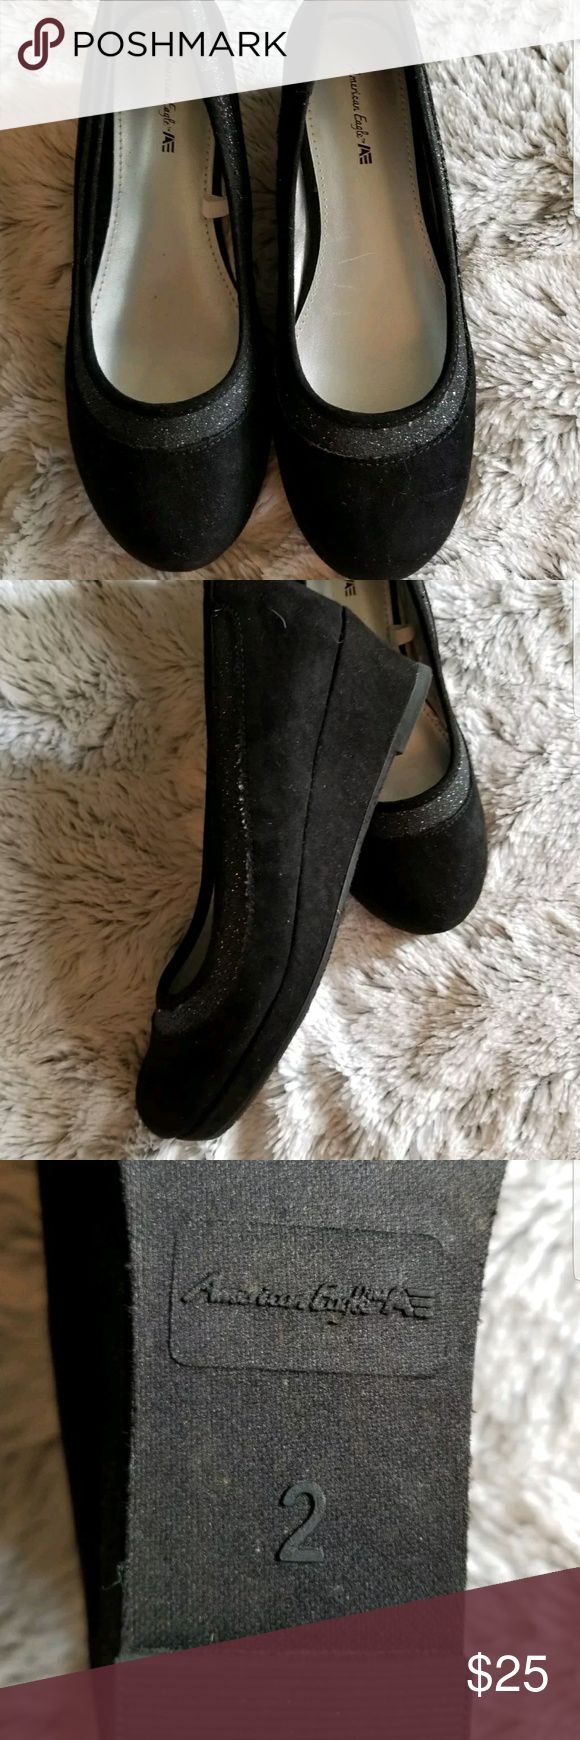 NWOB Girls Youth Black Fake Suede Wedge Shoes NWOB Girls Youth Black Fake Suede Wedge Shoes American Eagle sz 2 new w out tag American Eagle by Payless Shoes Platforms